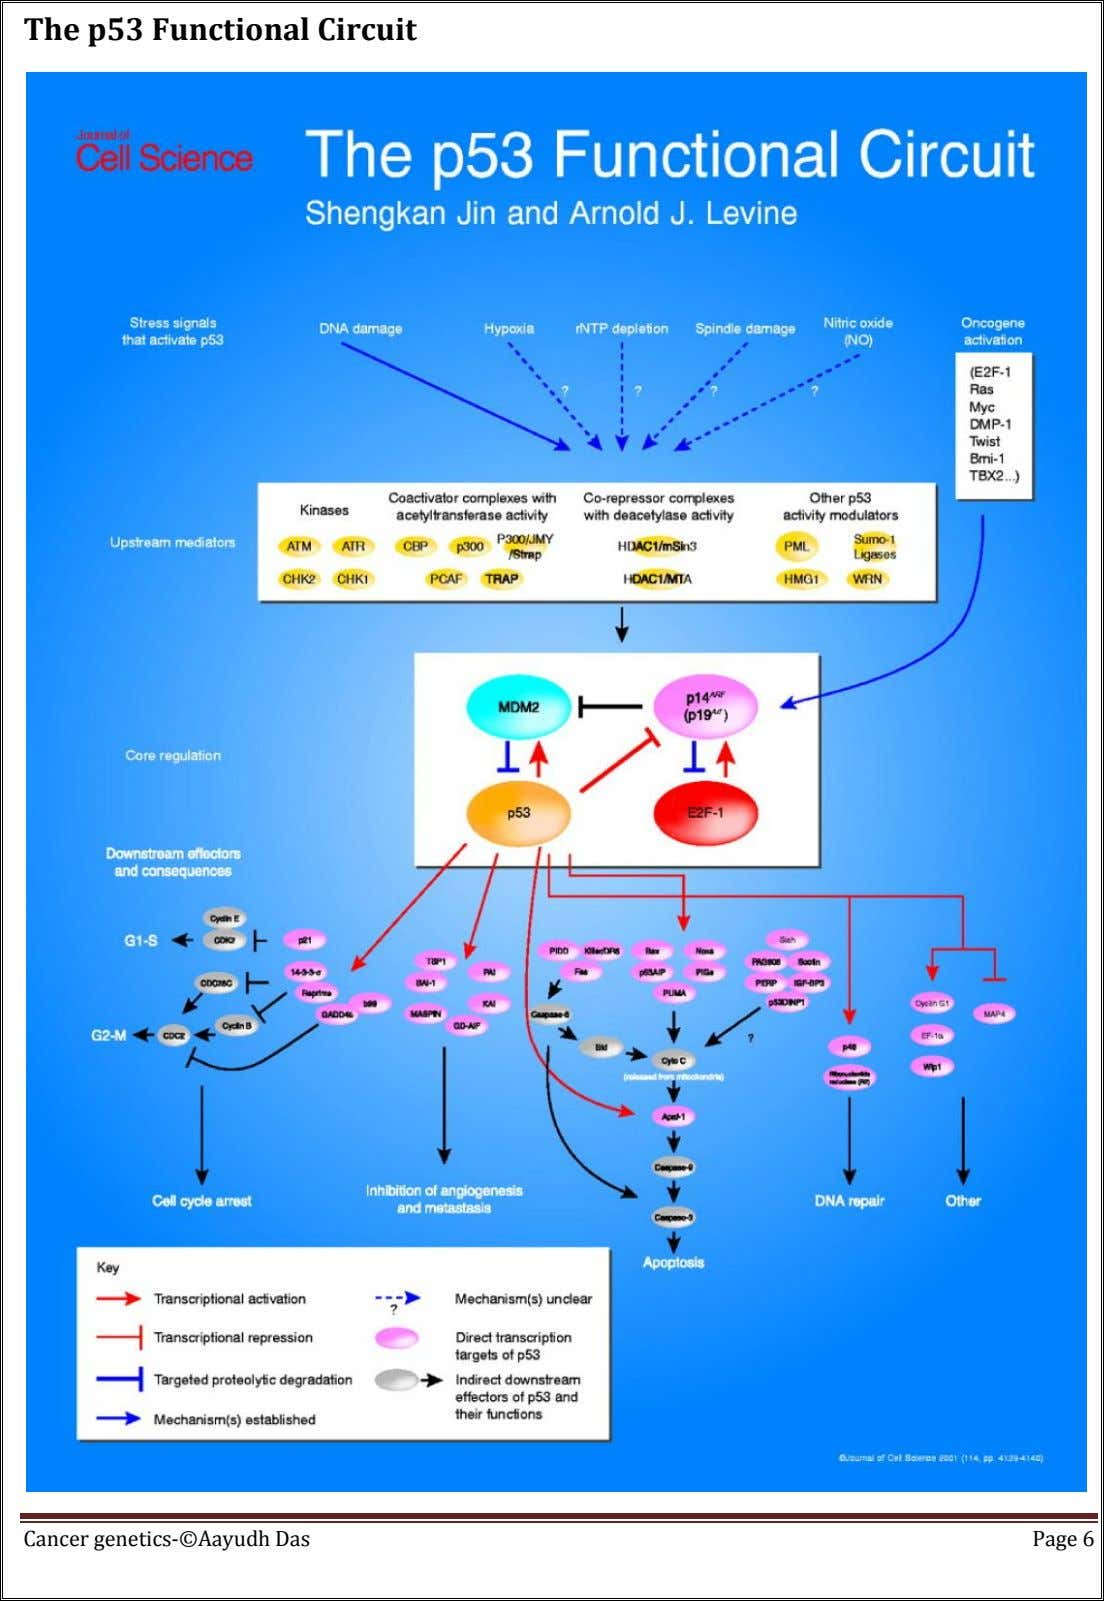 The p53 Functional Circuit Cancer genetics-©Aayudh Das Page 6